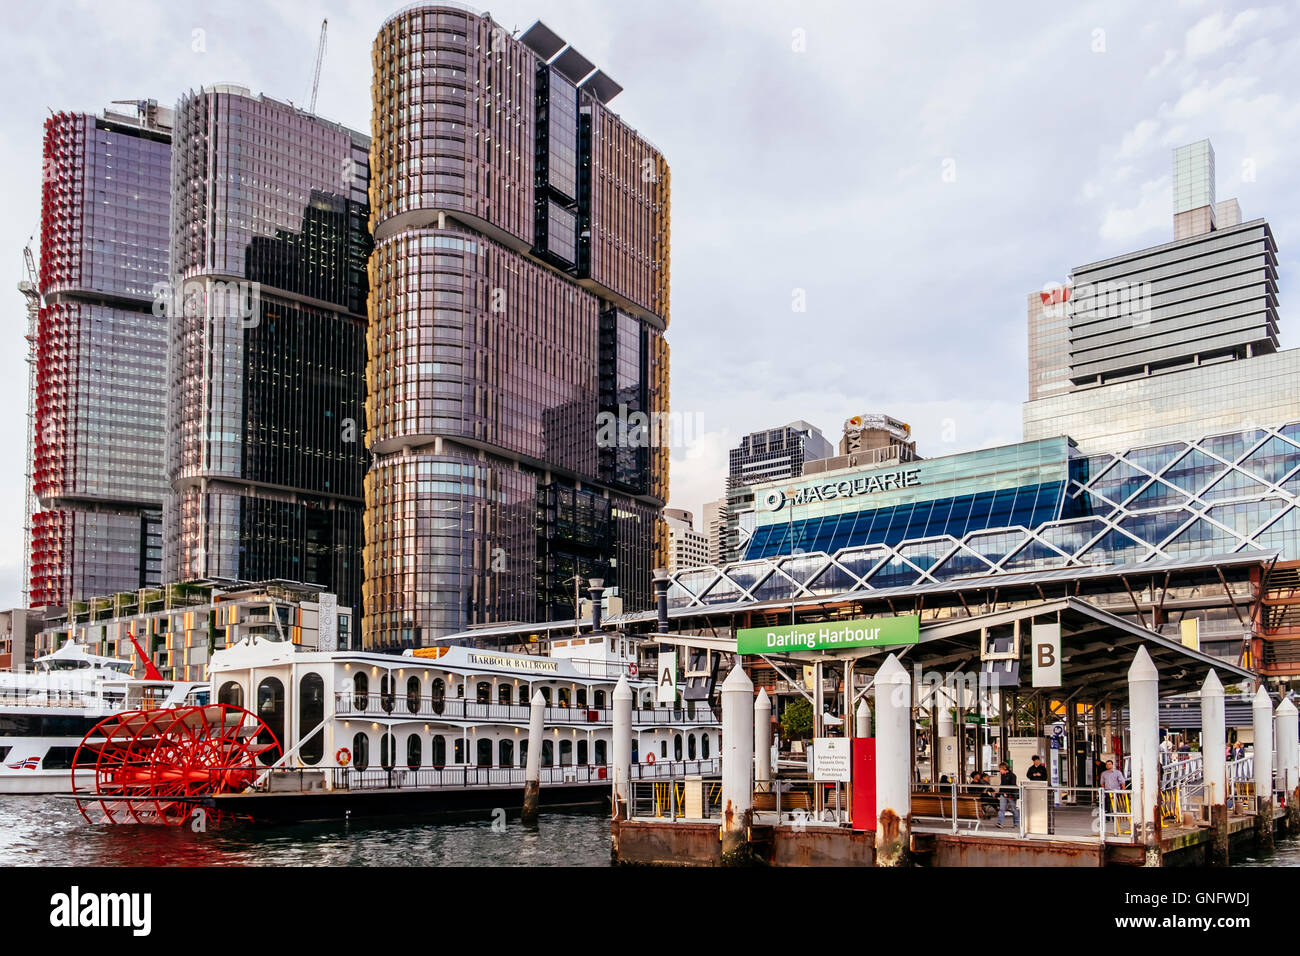 Darling Harbour at dusk, Sydney, New South Wales, Australia - Stock Image